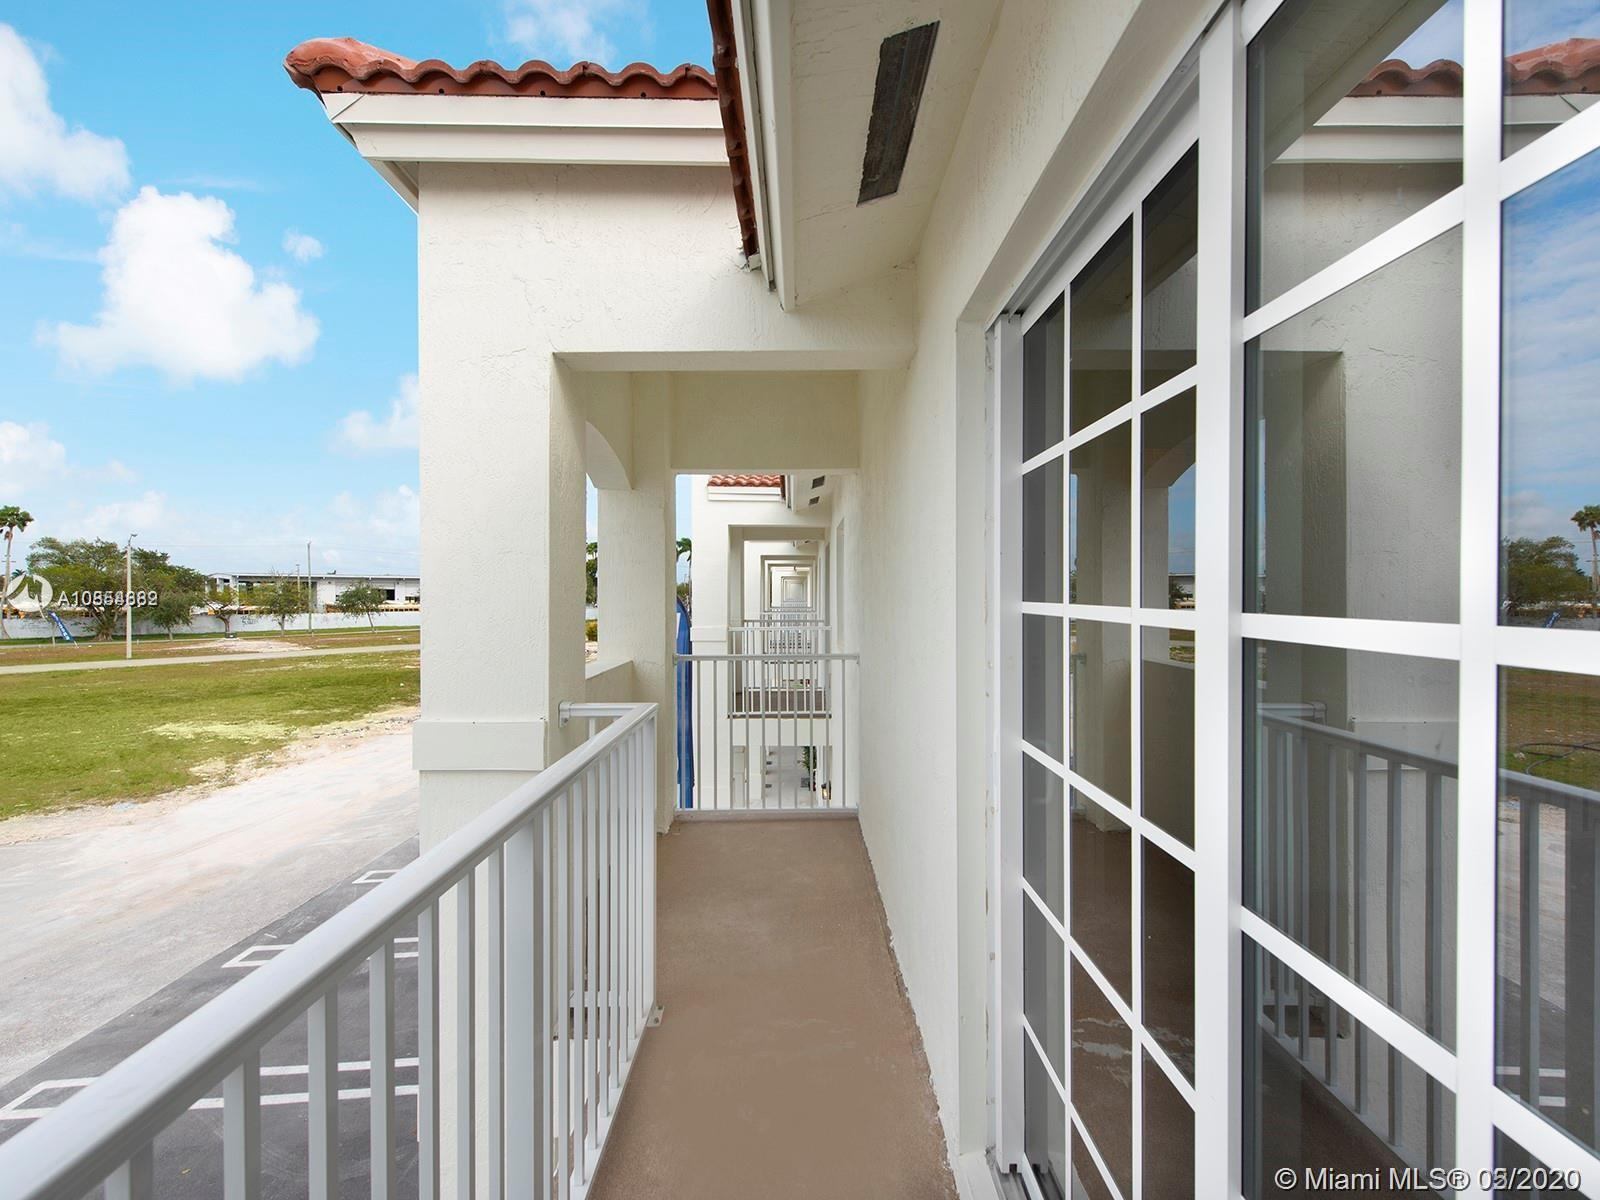 634 SW 2nd Pl # 58, Florida City, Florida 33034, 2 Bedrooms Bedrooms, ,2 BathroomsBathrooms,Residential,For Sale,634 SW 2nd Pl # 58,A10854682